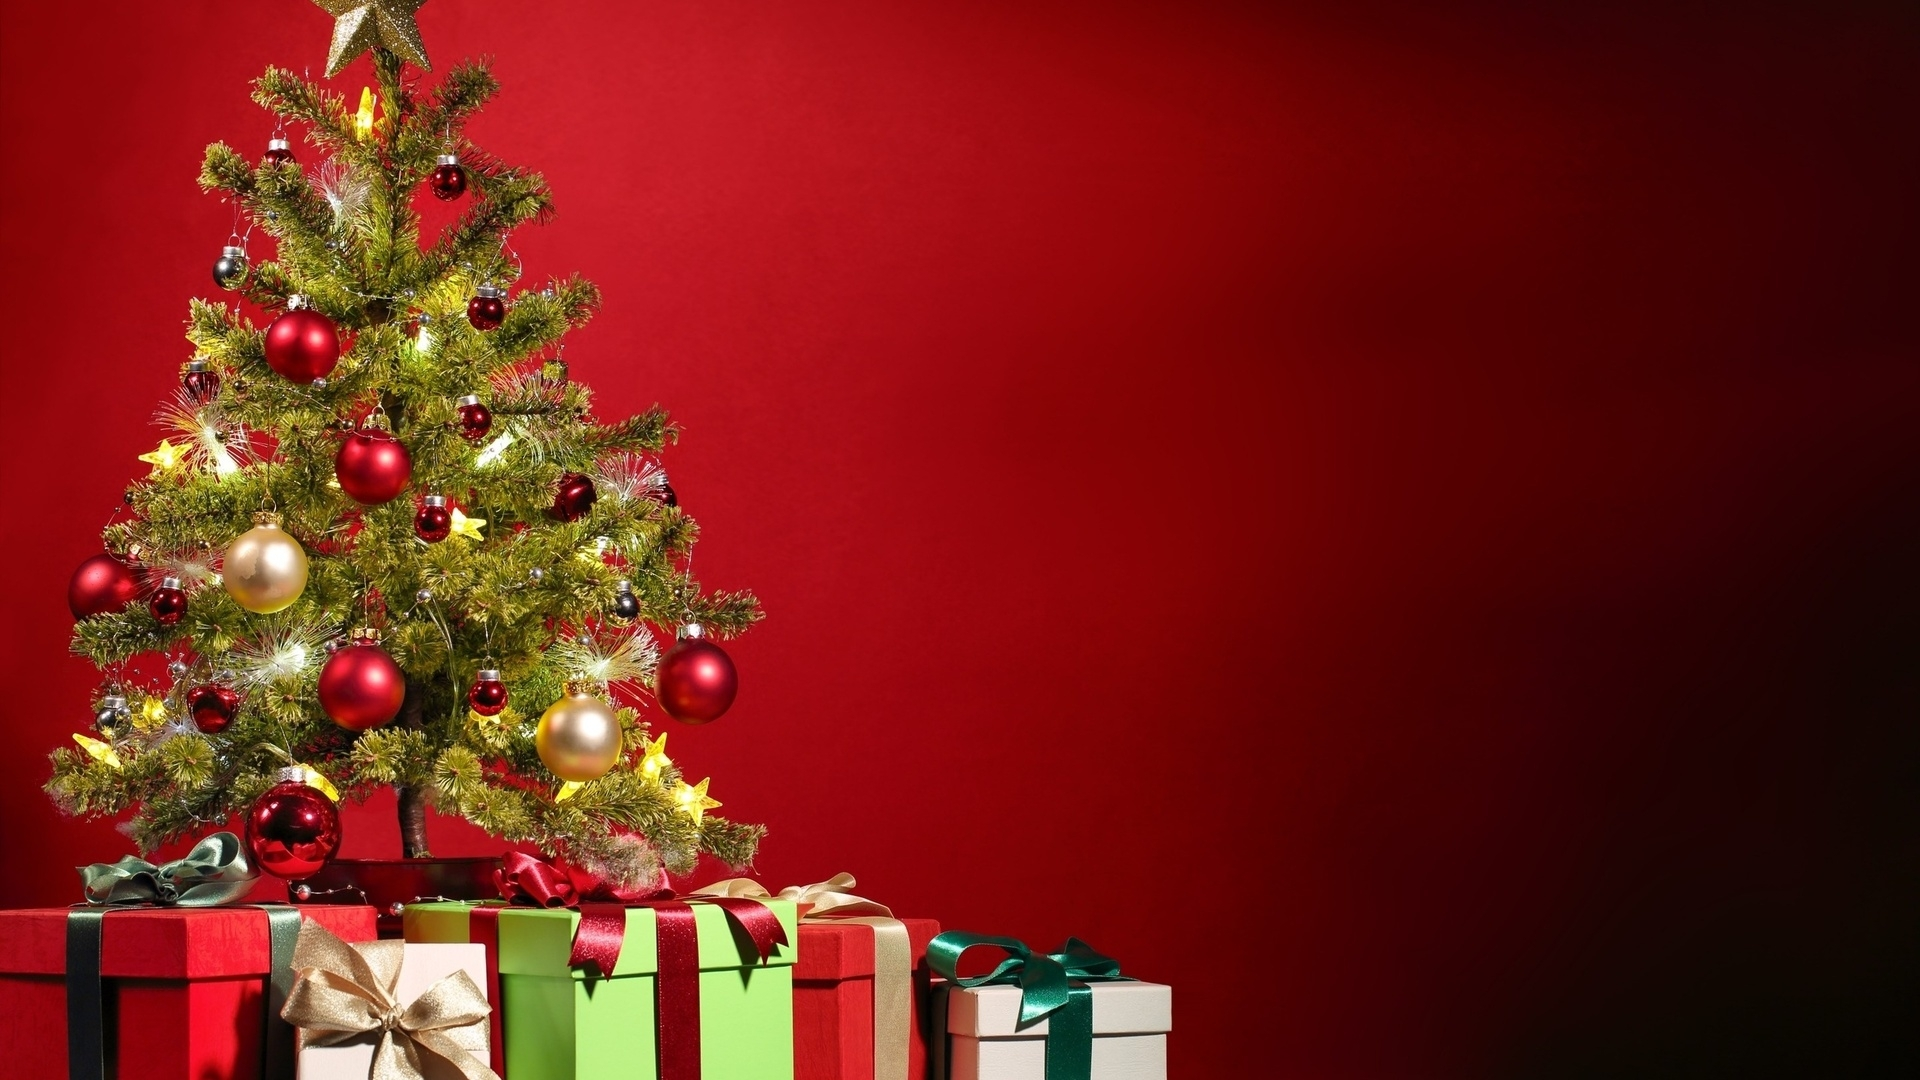 christmas tree backgrounds   hd wallpapers pulse